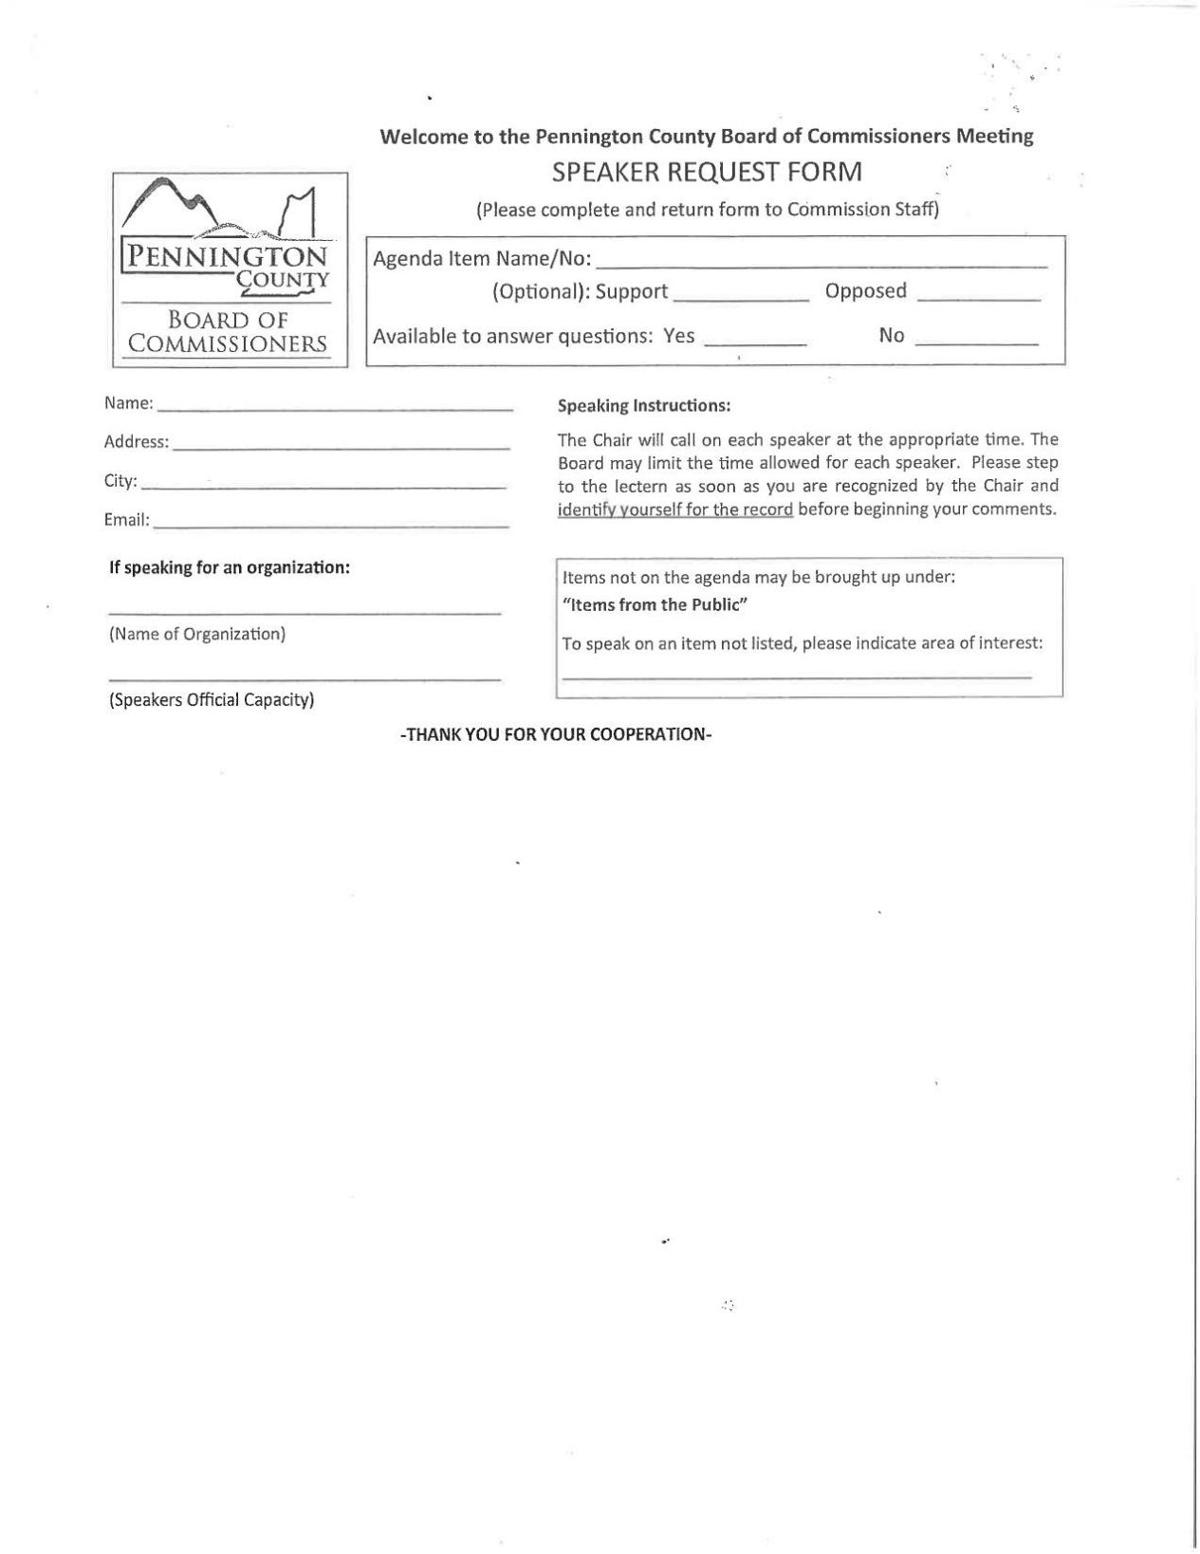 Pennington County Speaker Request form